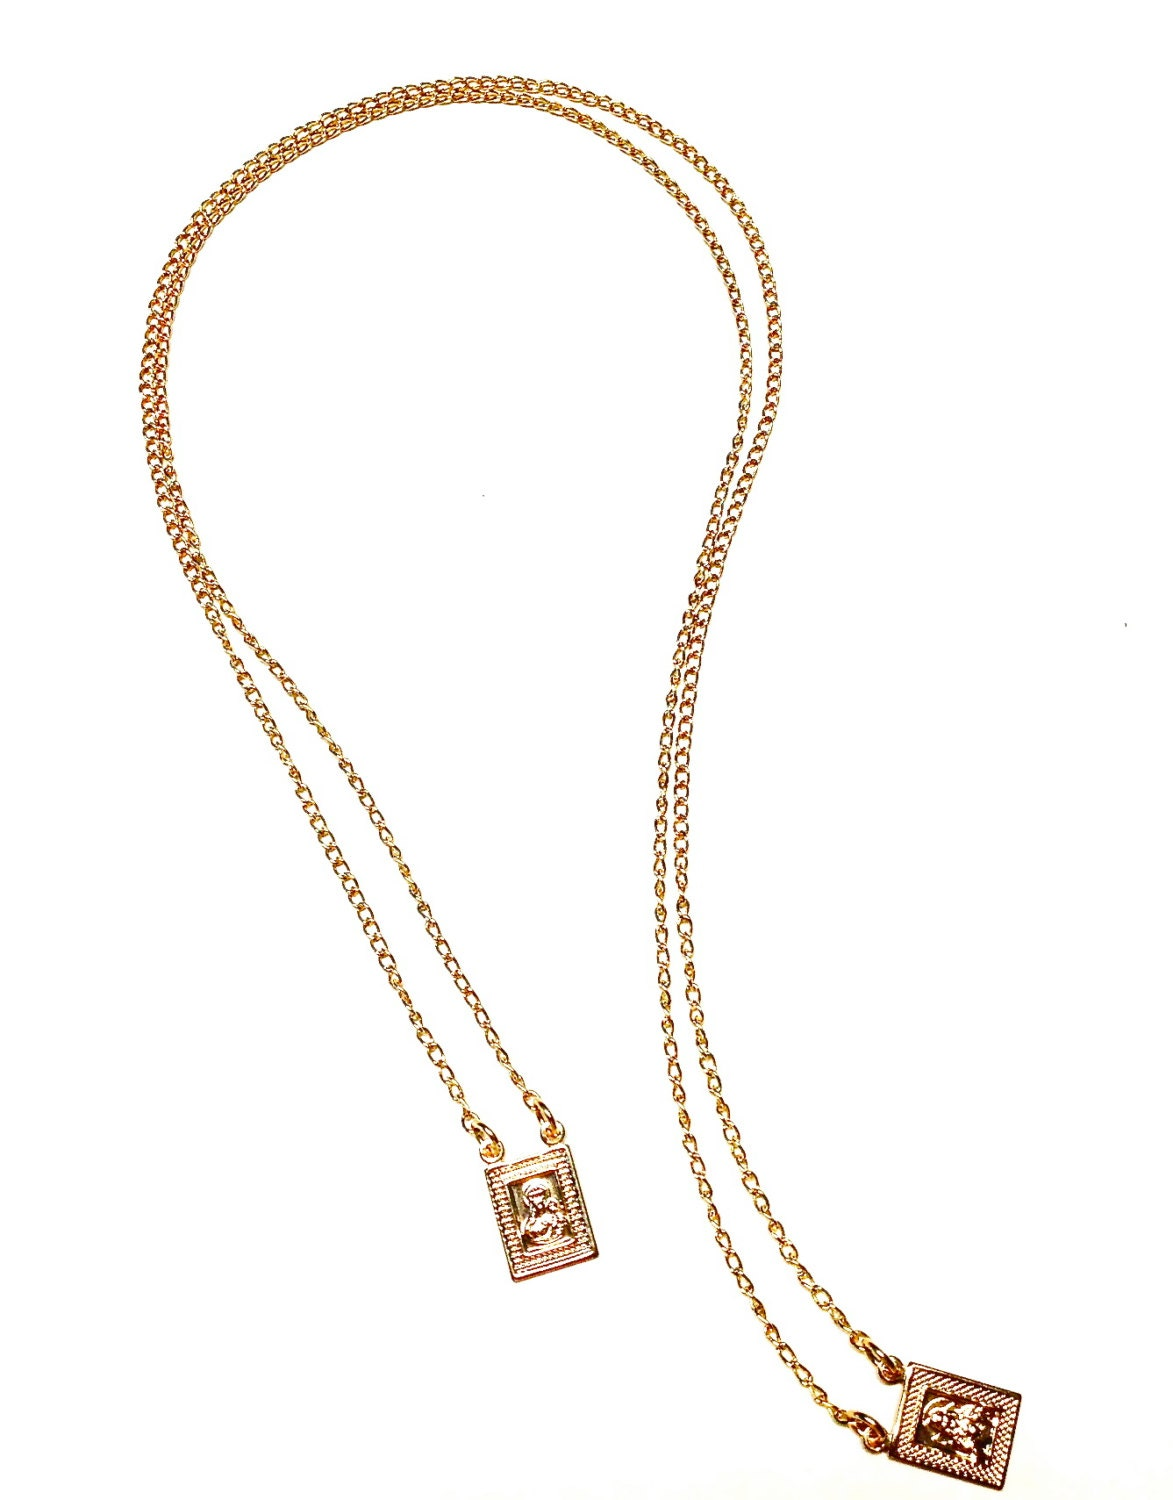 18k gold filled scapular escapulario necklace